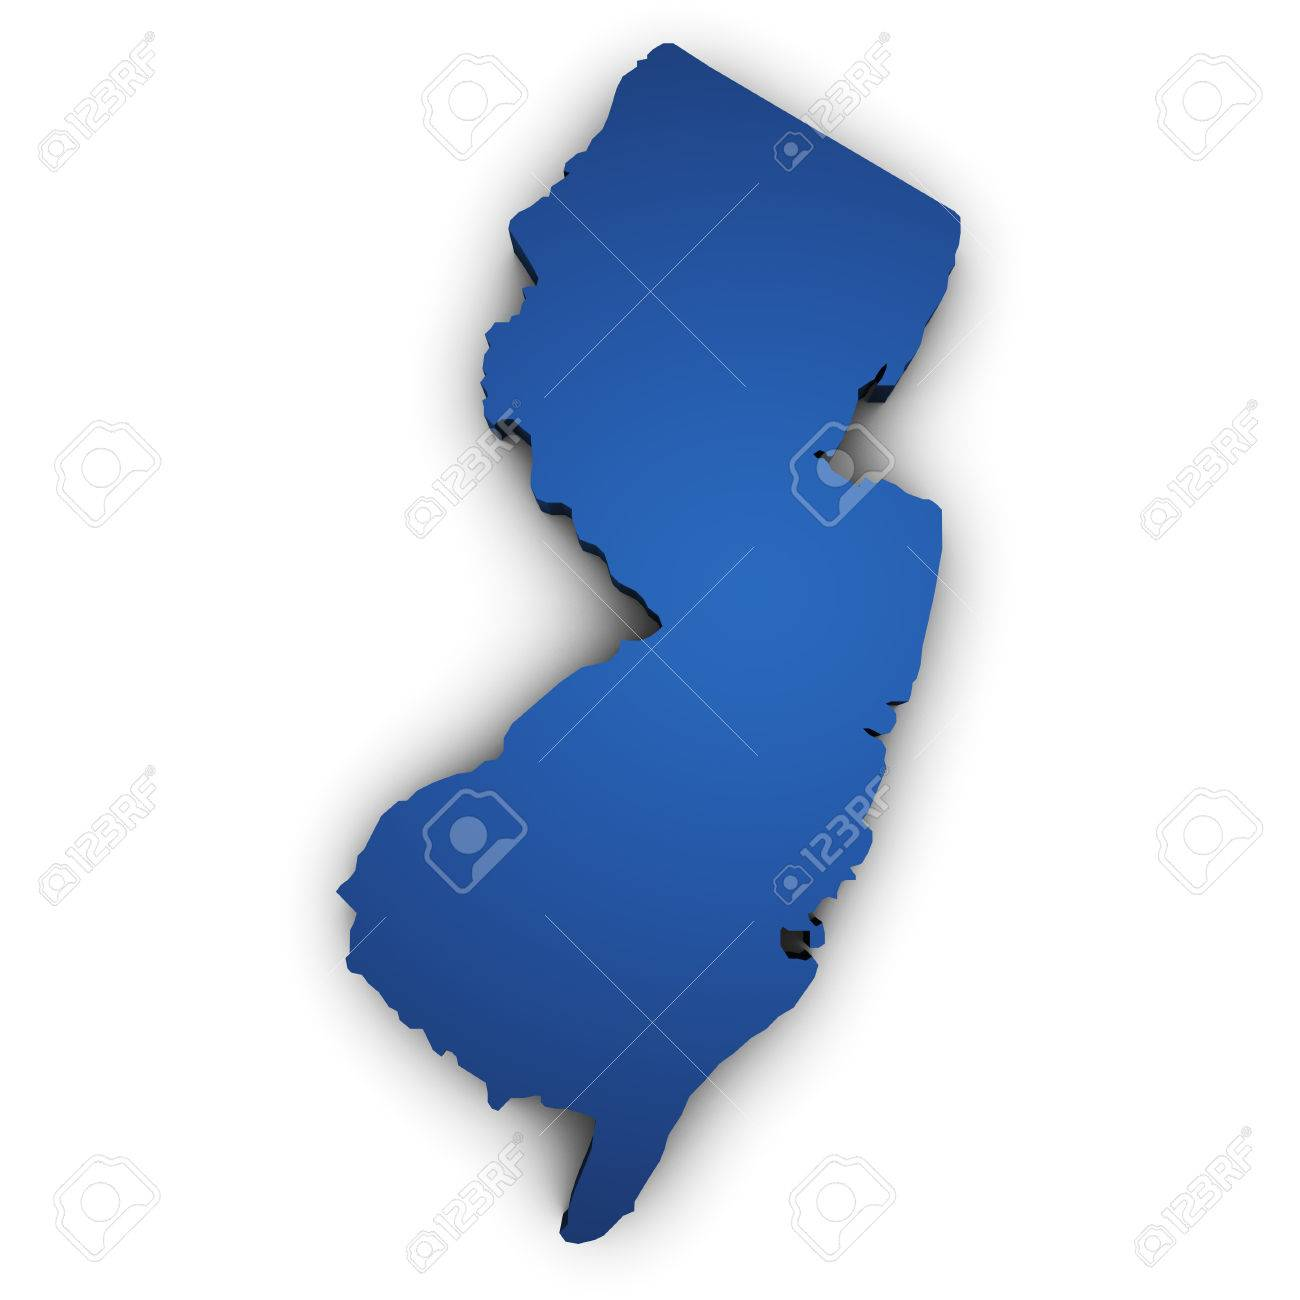 Shape 3d Of New Jersey State Map Colored In Blue And Isolated